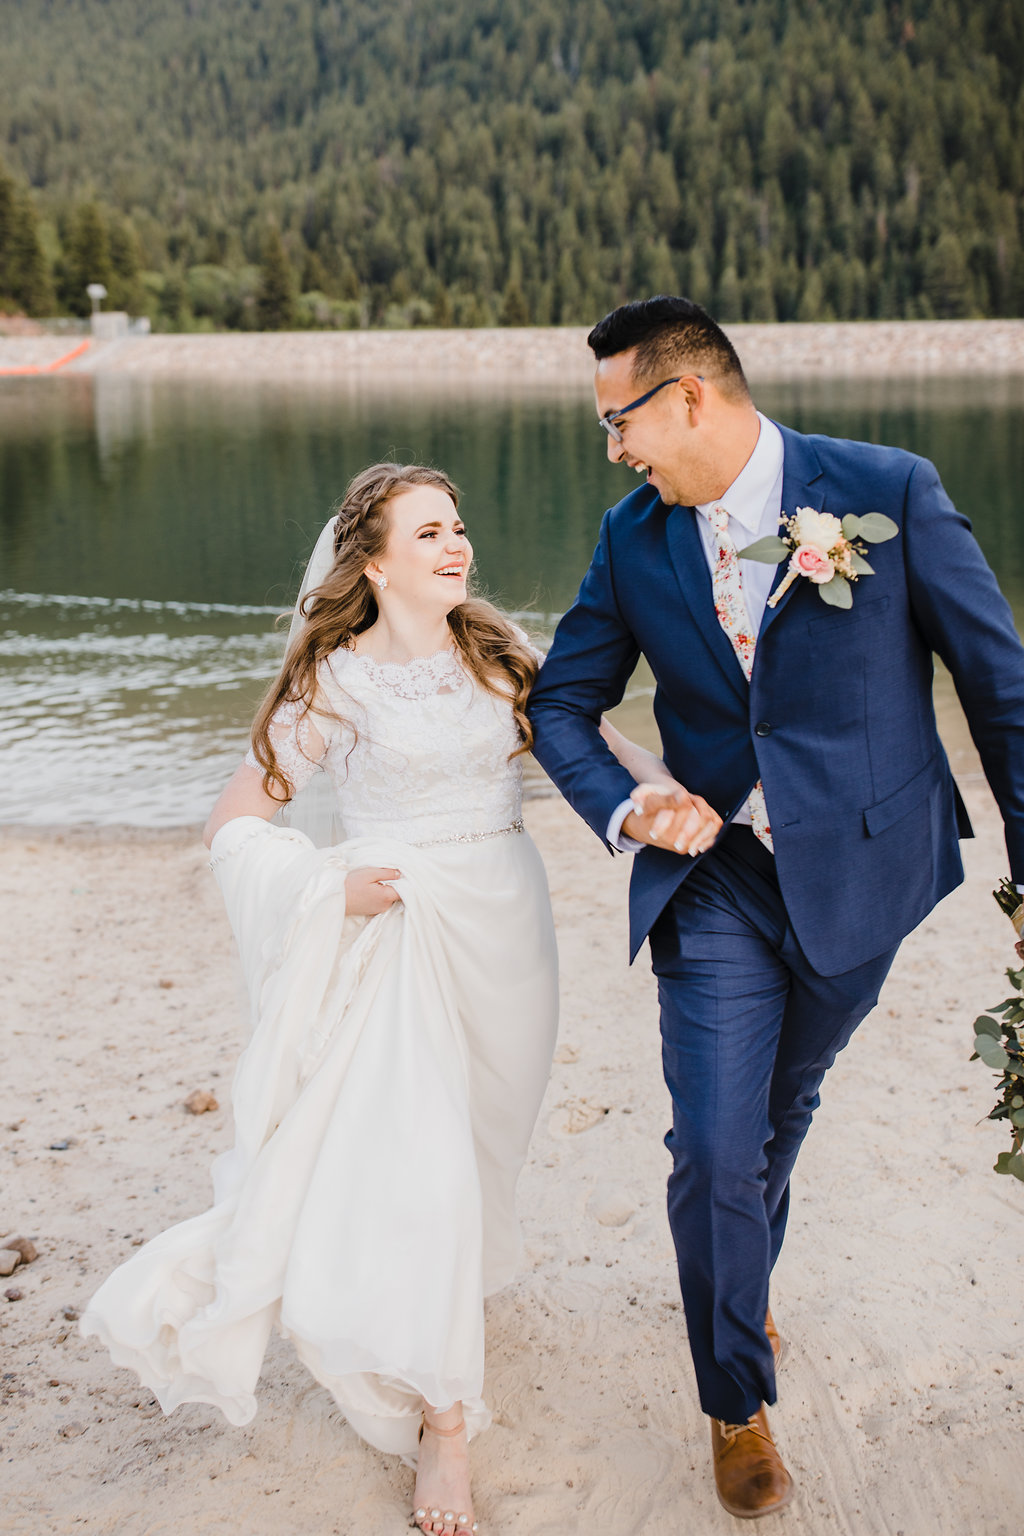 bride and groom by the water provo utah tibble fork reservoir northern utah wedding photographer calli richards